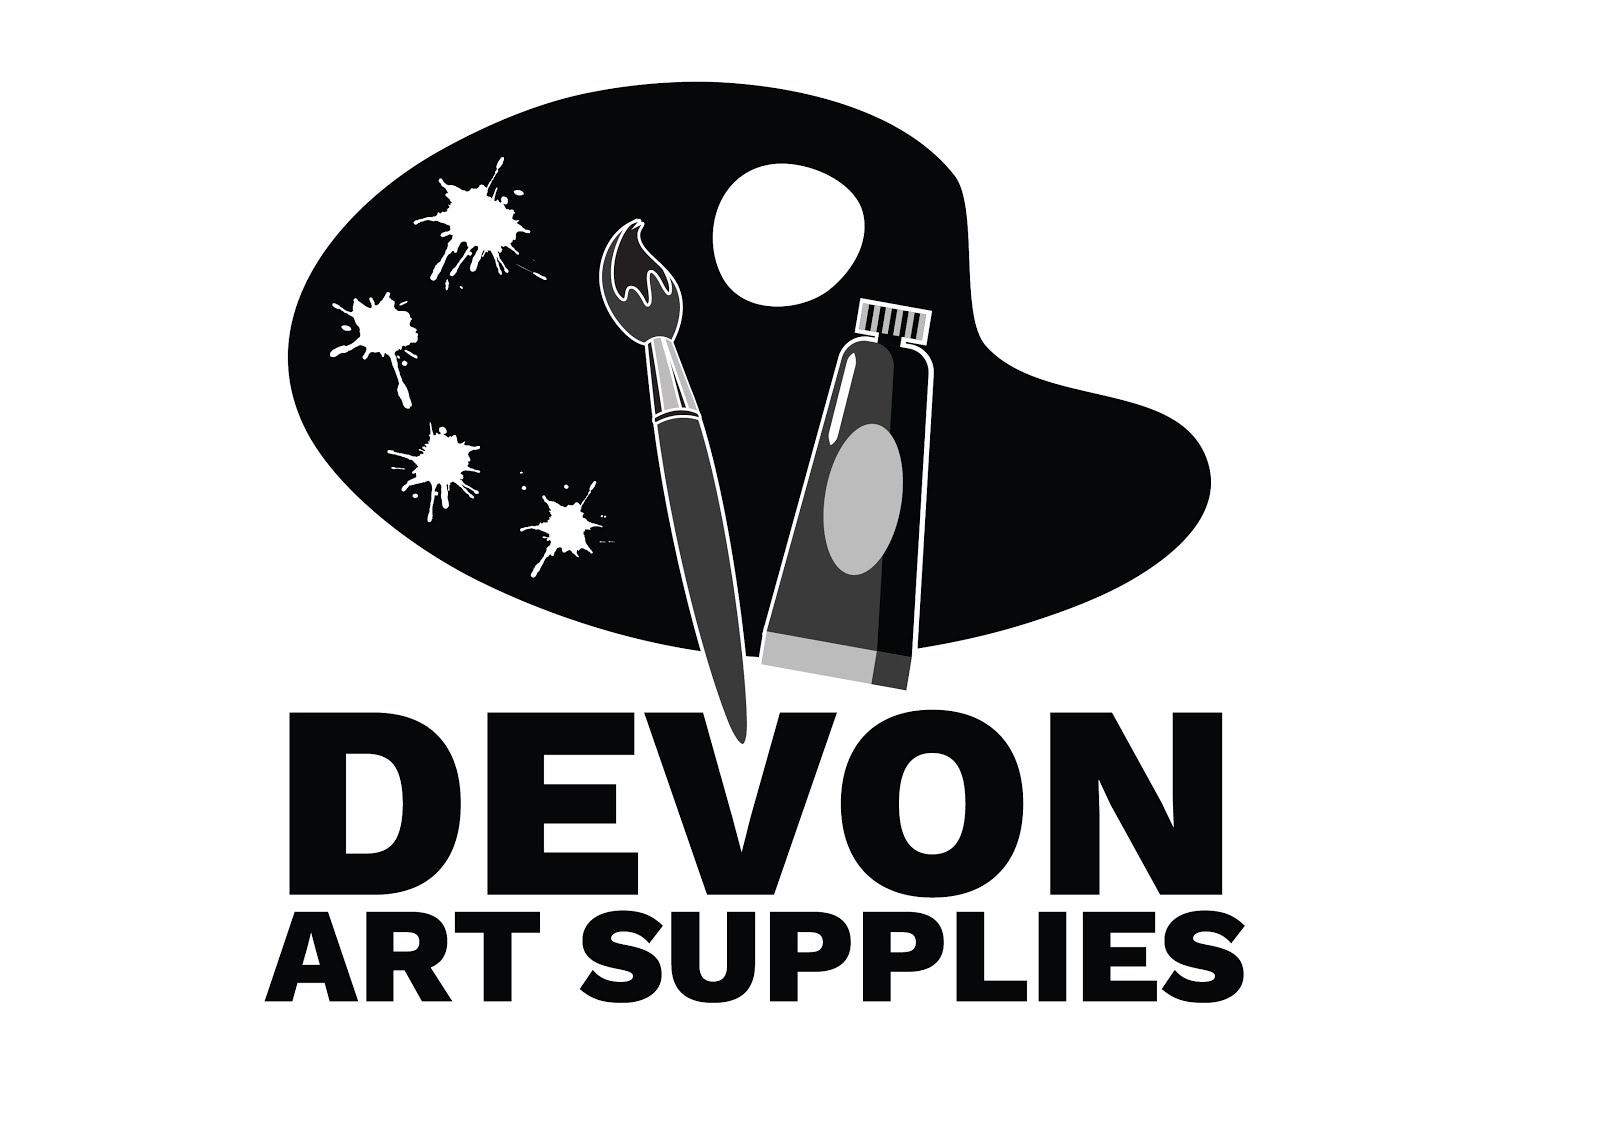 Looking for art supplies? Take a look here...